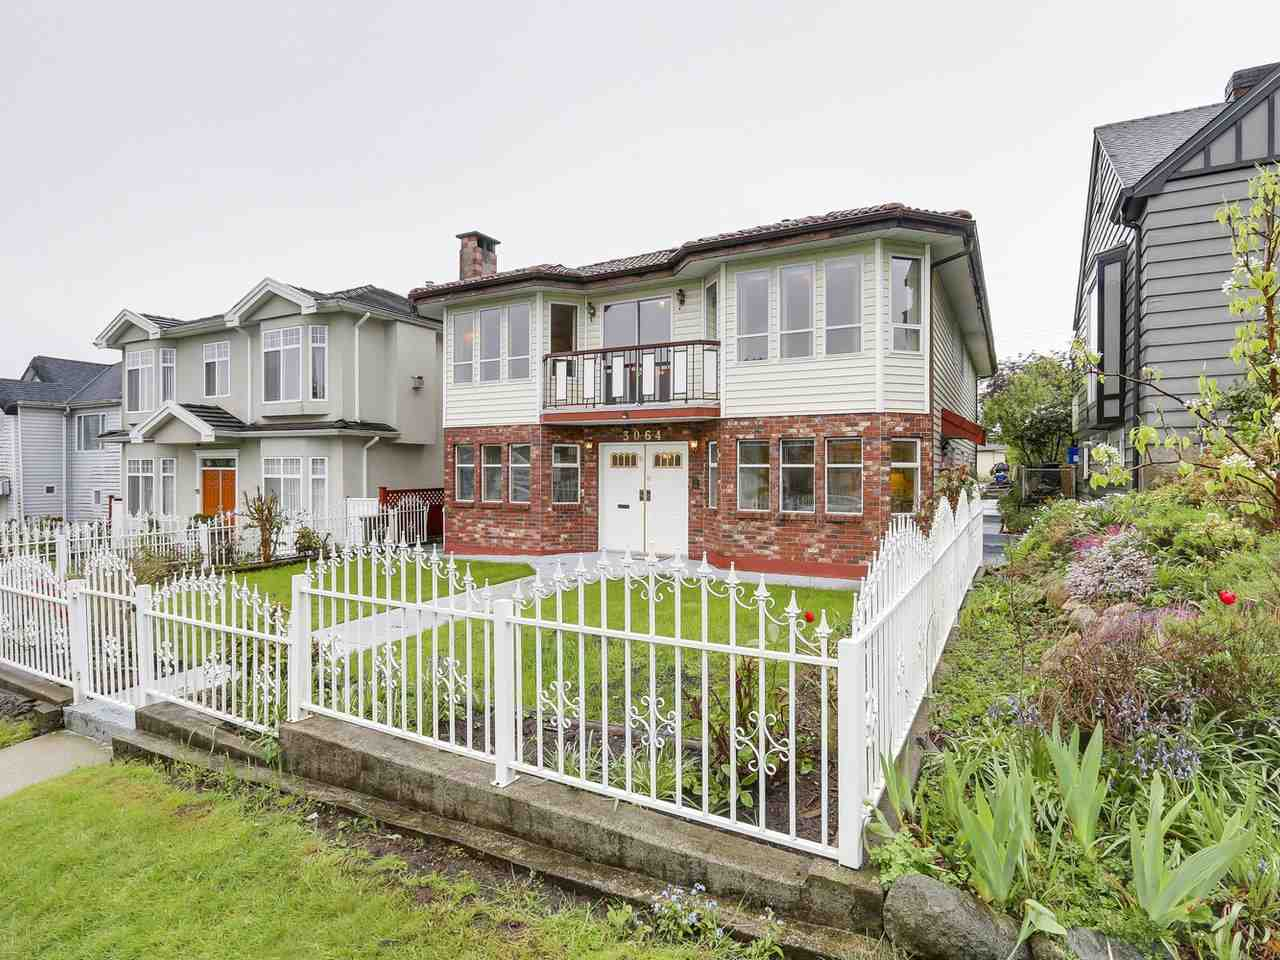 Main Photo: 3064 KITCHENER Street in Vancouver: Renfrew VE House for sale (Vancouver East)  : MLS® # R2161976